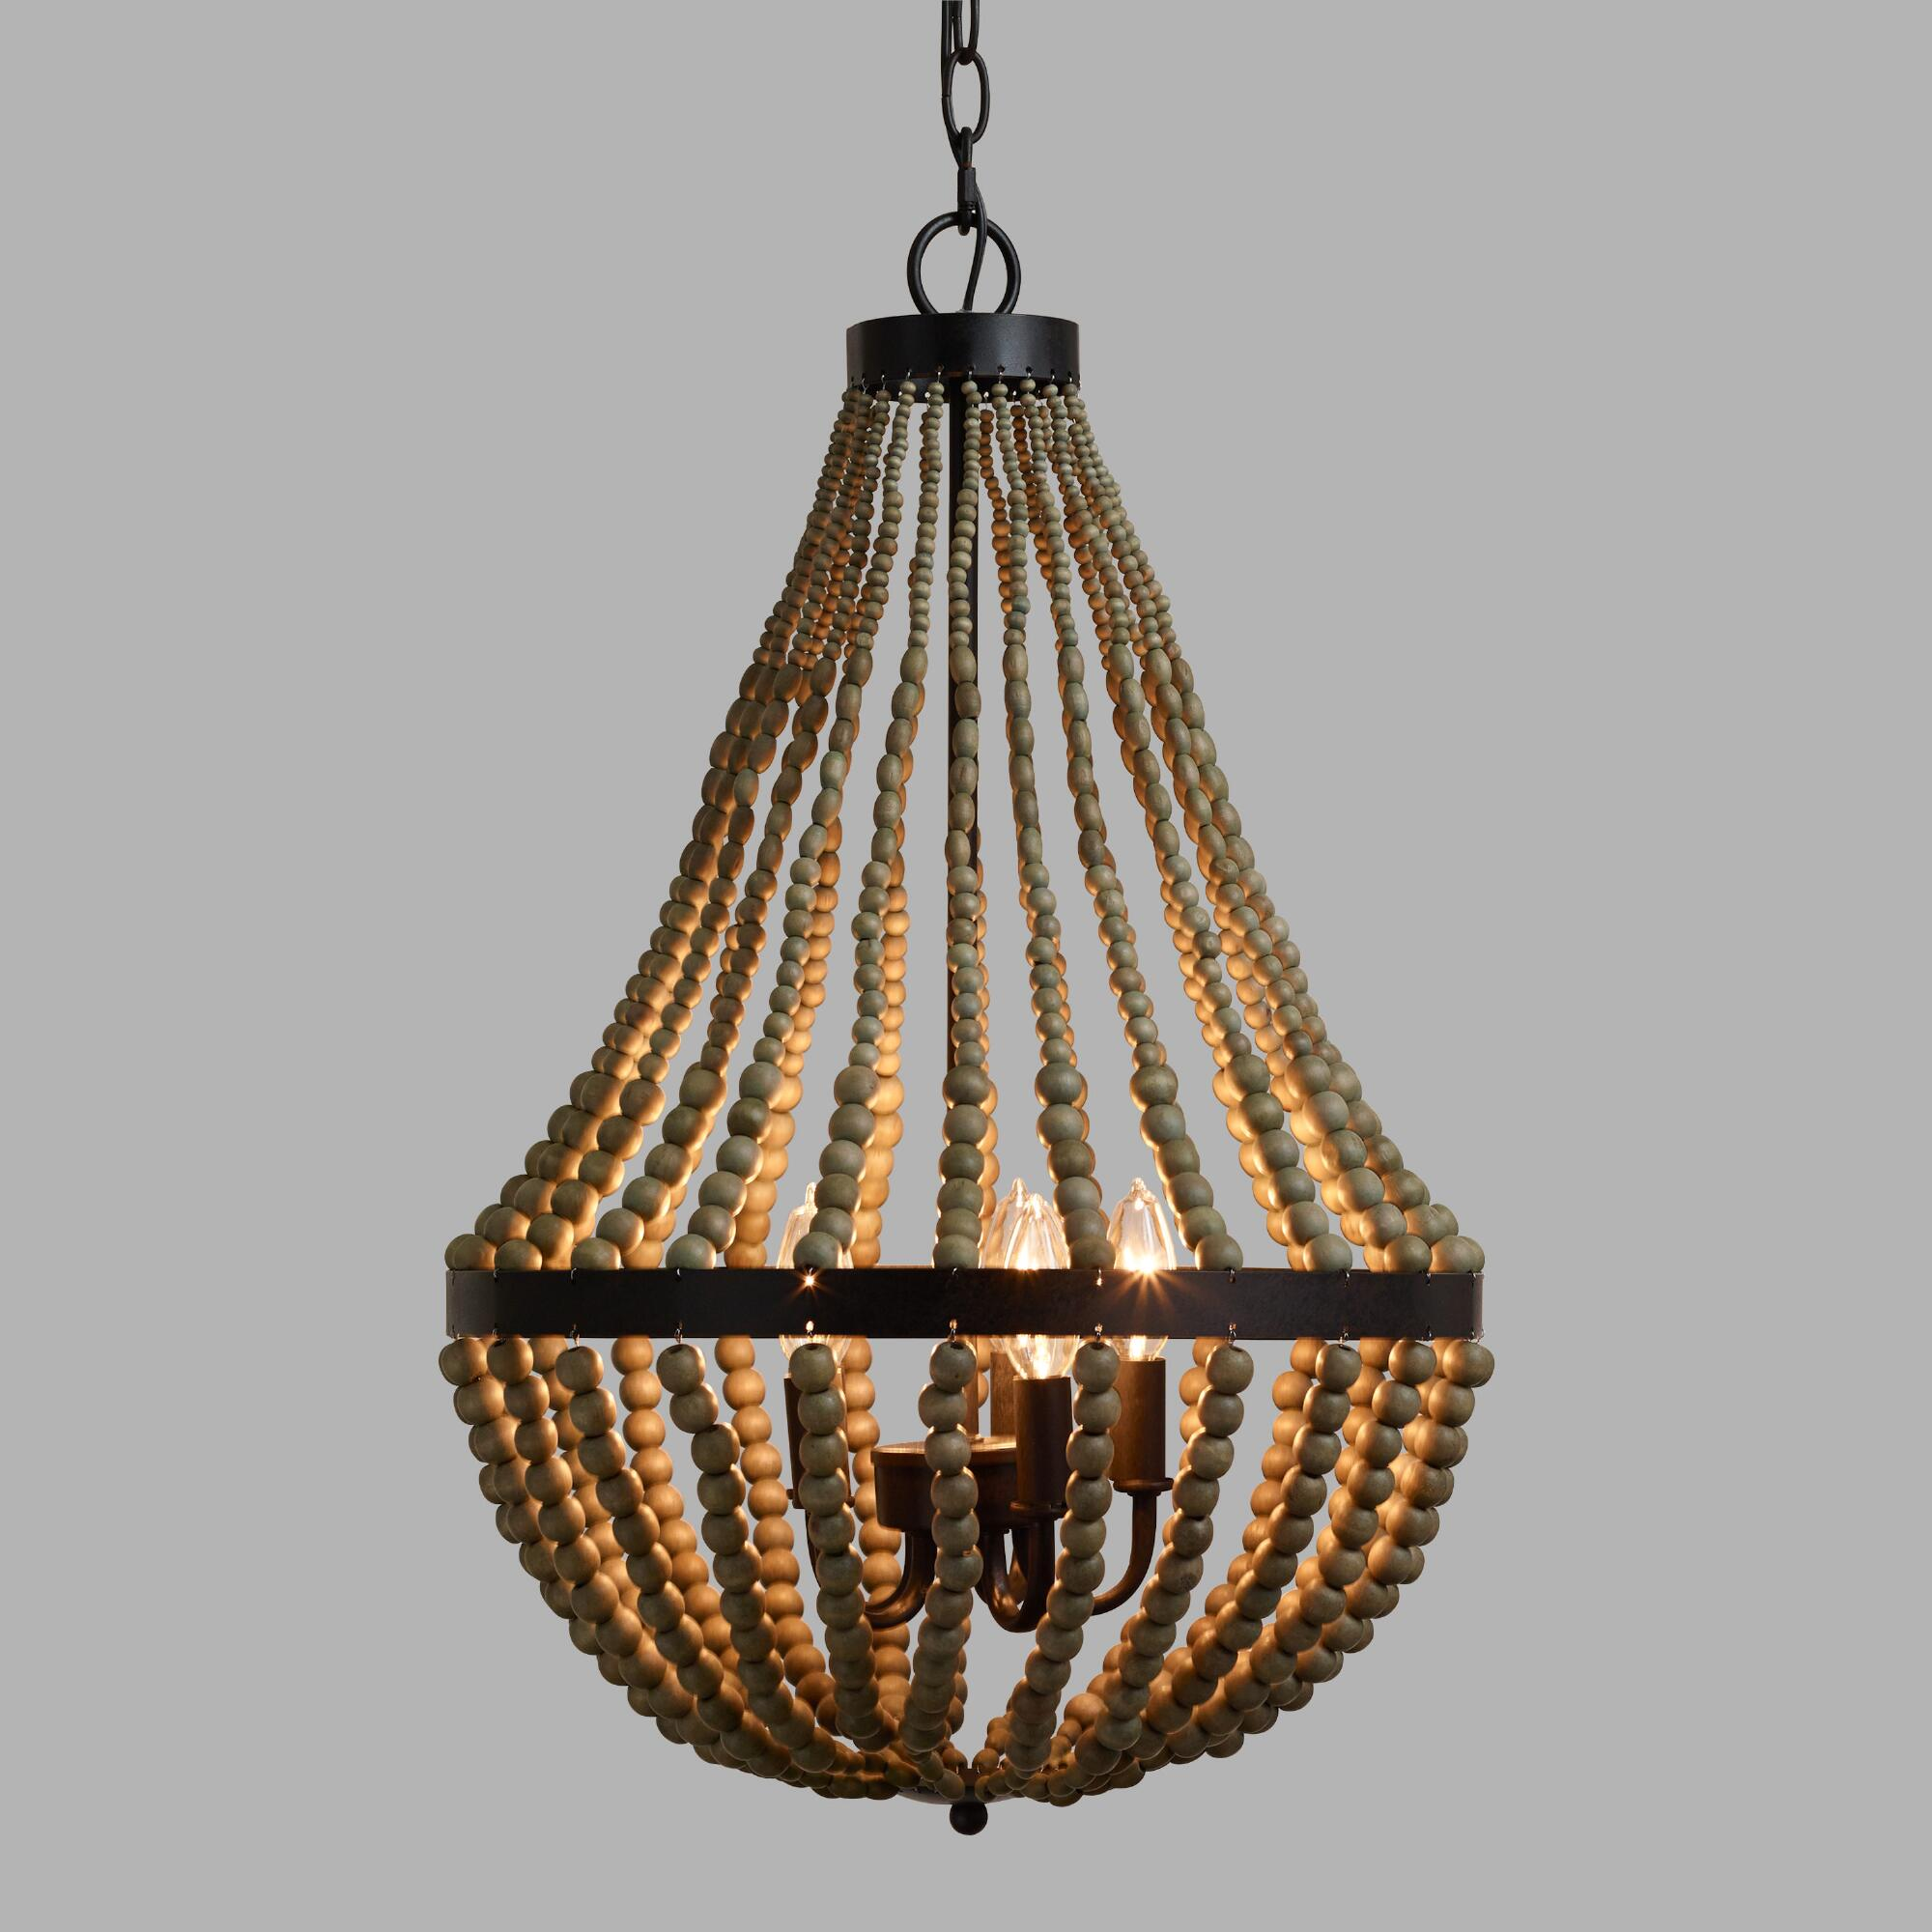 eclectic chandelier home naples beaded classic wood french designer grey product chandeliers country kathy light kuo productlist